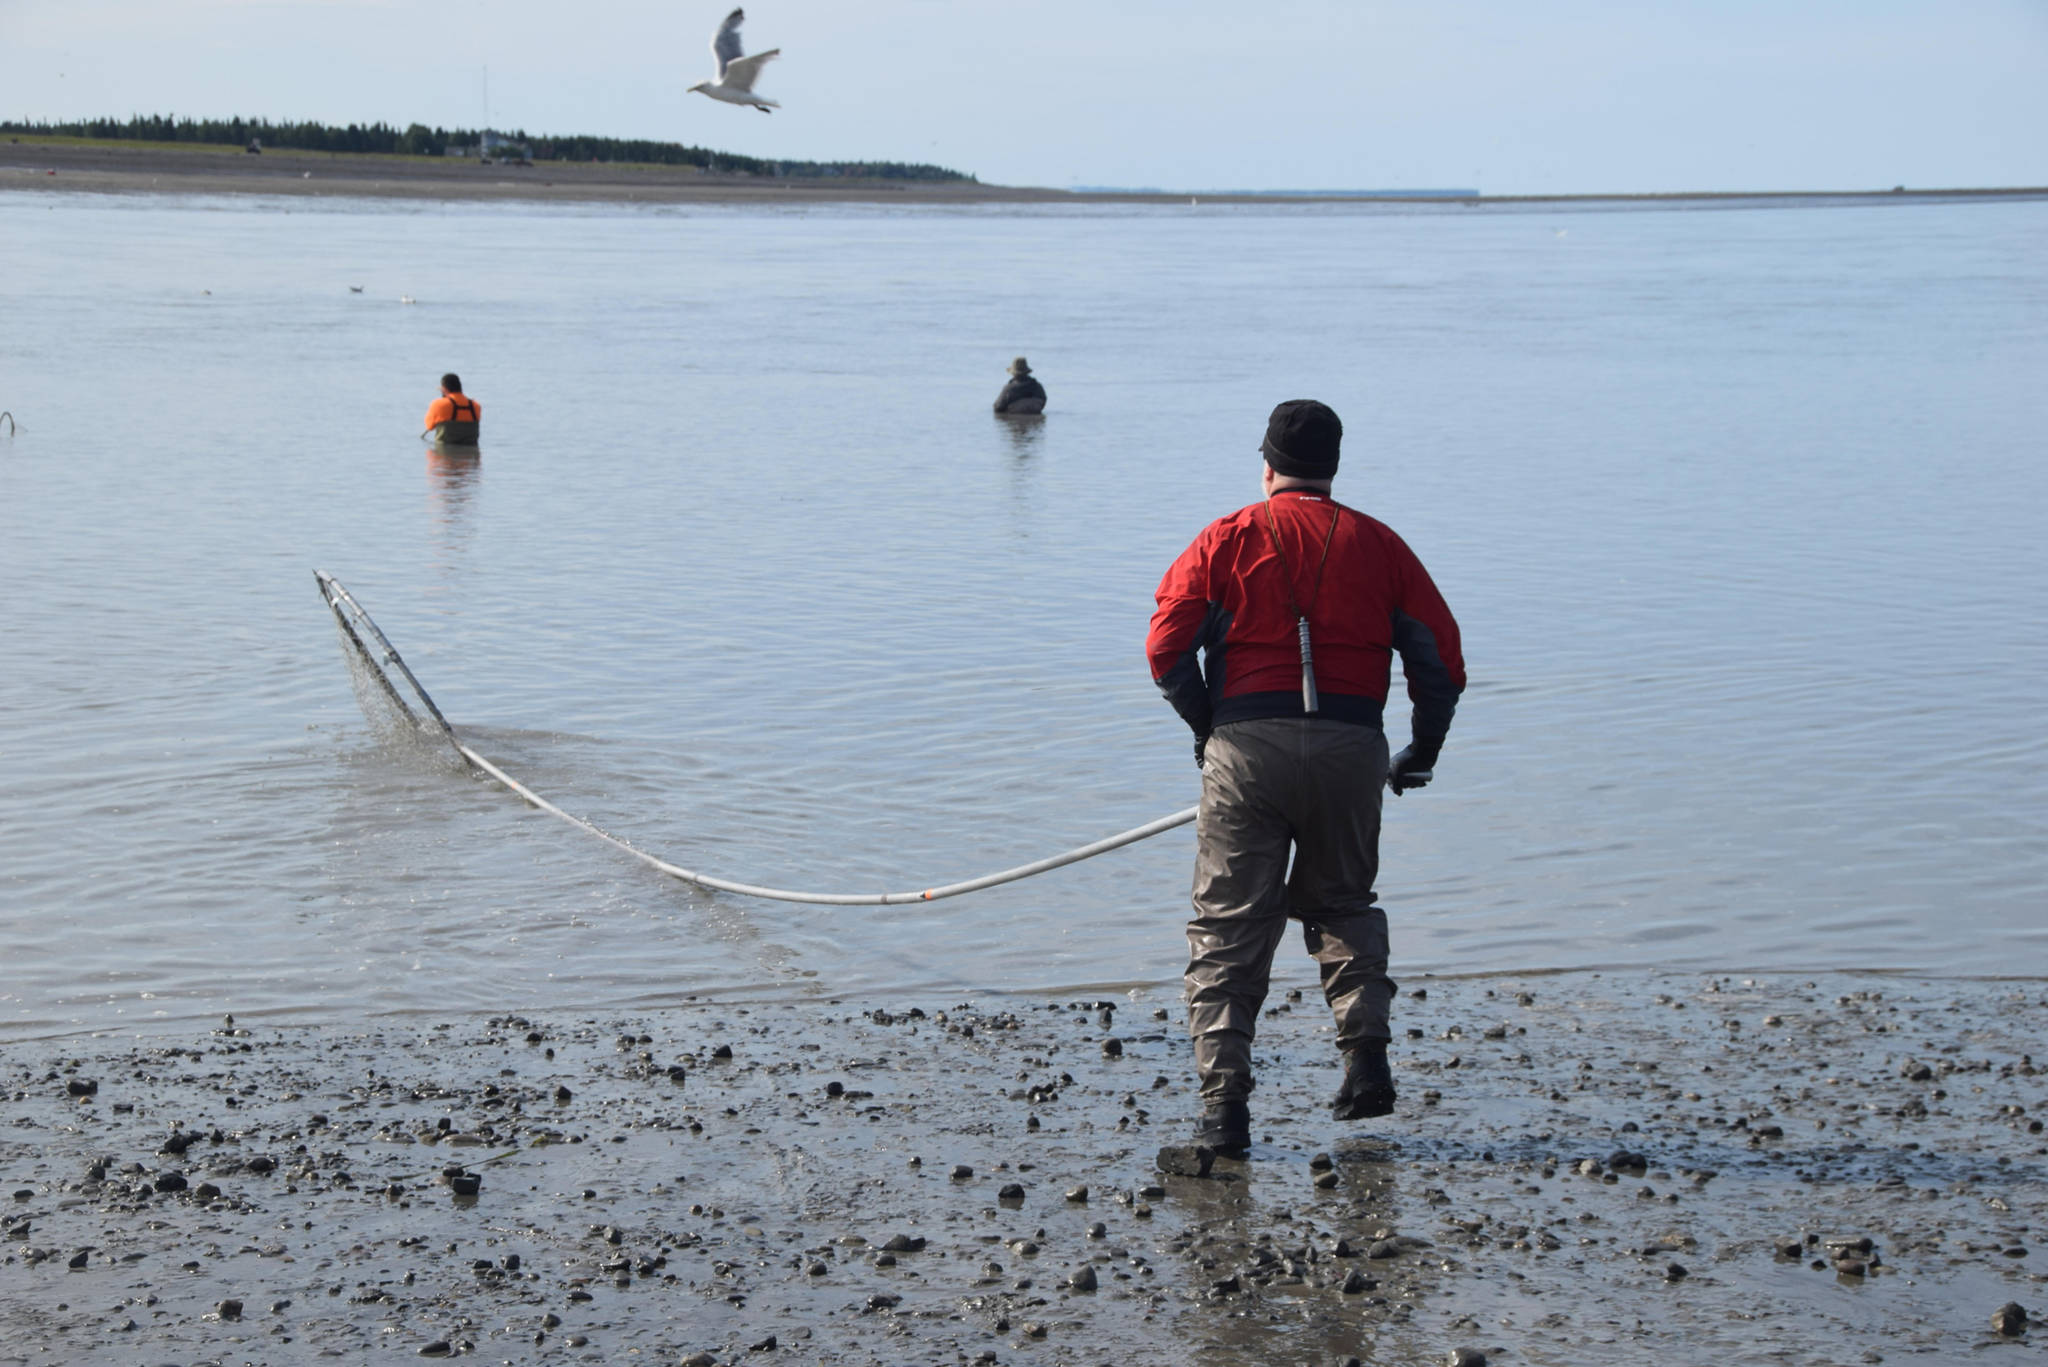 John Hakla from Eagle River heads back into the water while dipnetting on the North Kenai Beach on Wednesday, July 17, 2019. (Photo by Brian Mazurek/Peninsula Clarion)